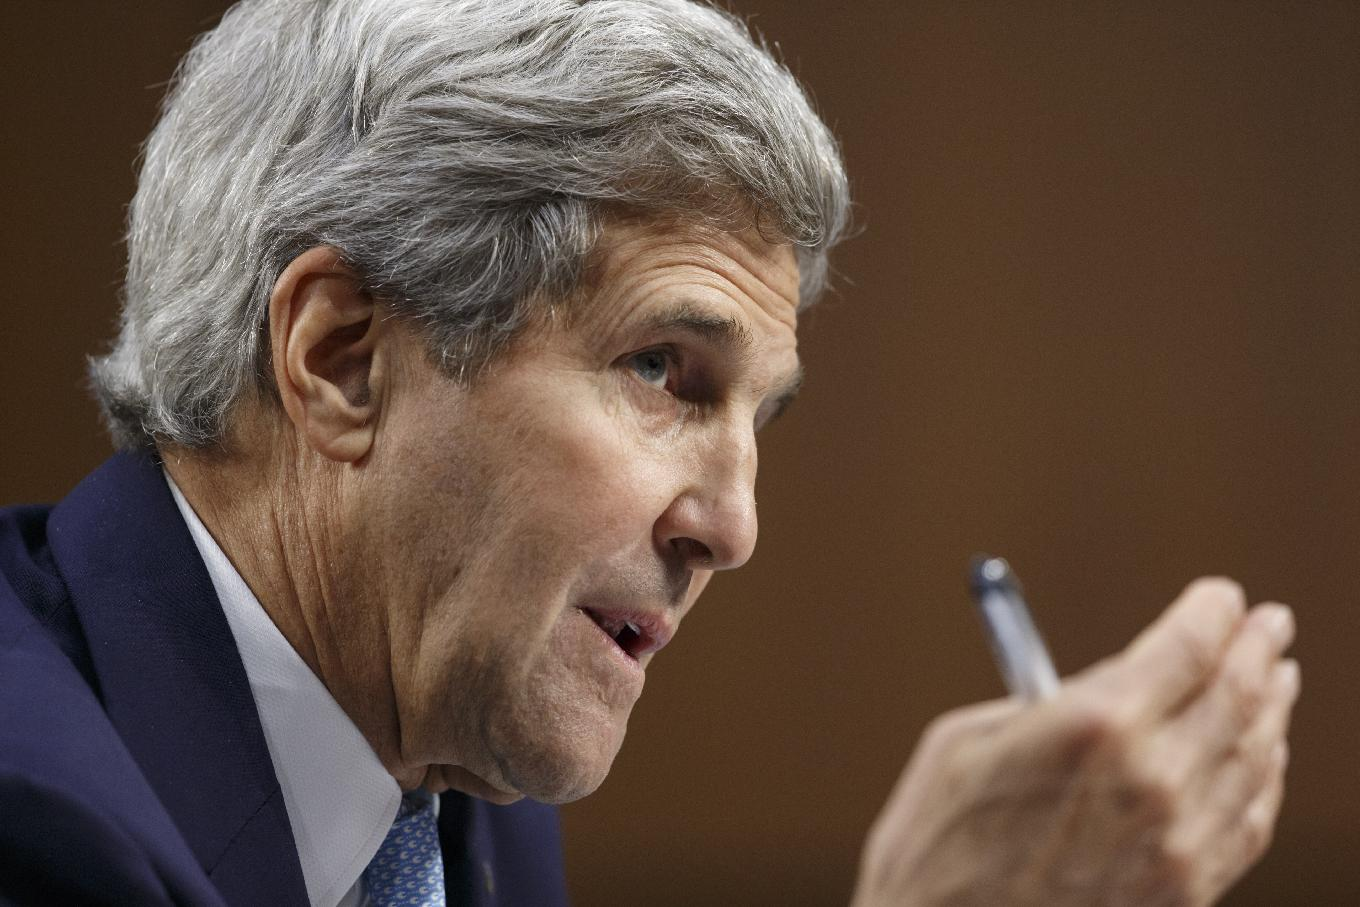 House approves arms, training for Syrian rebels